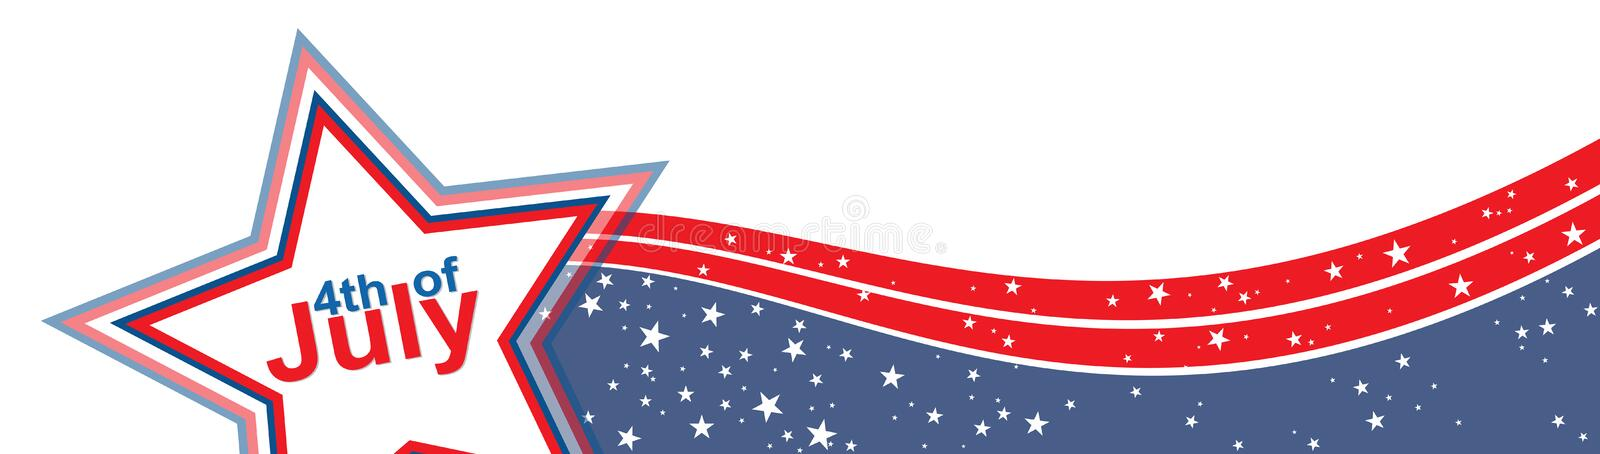 4th of july. American independence day. Vector illustration stock illustration